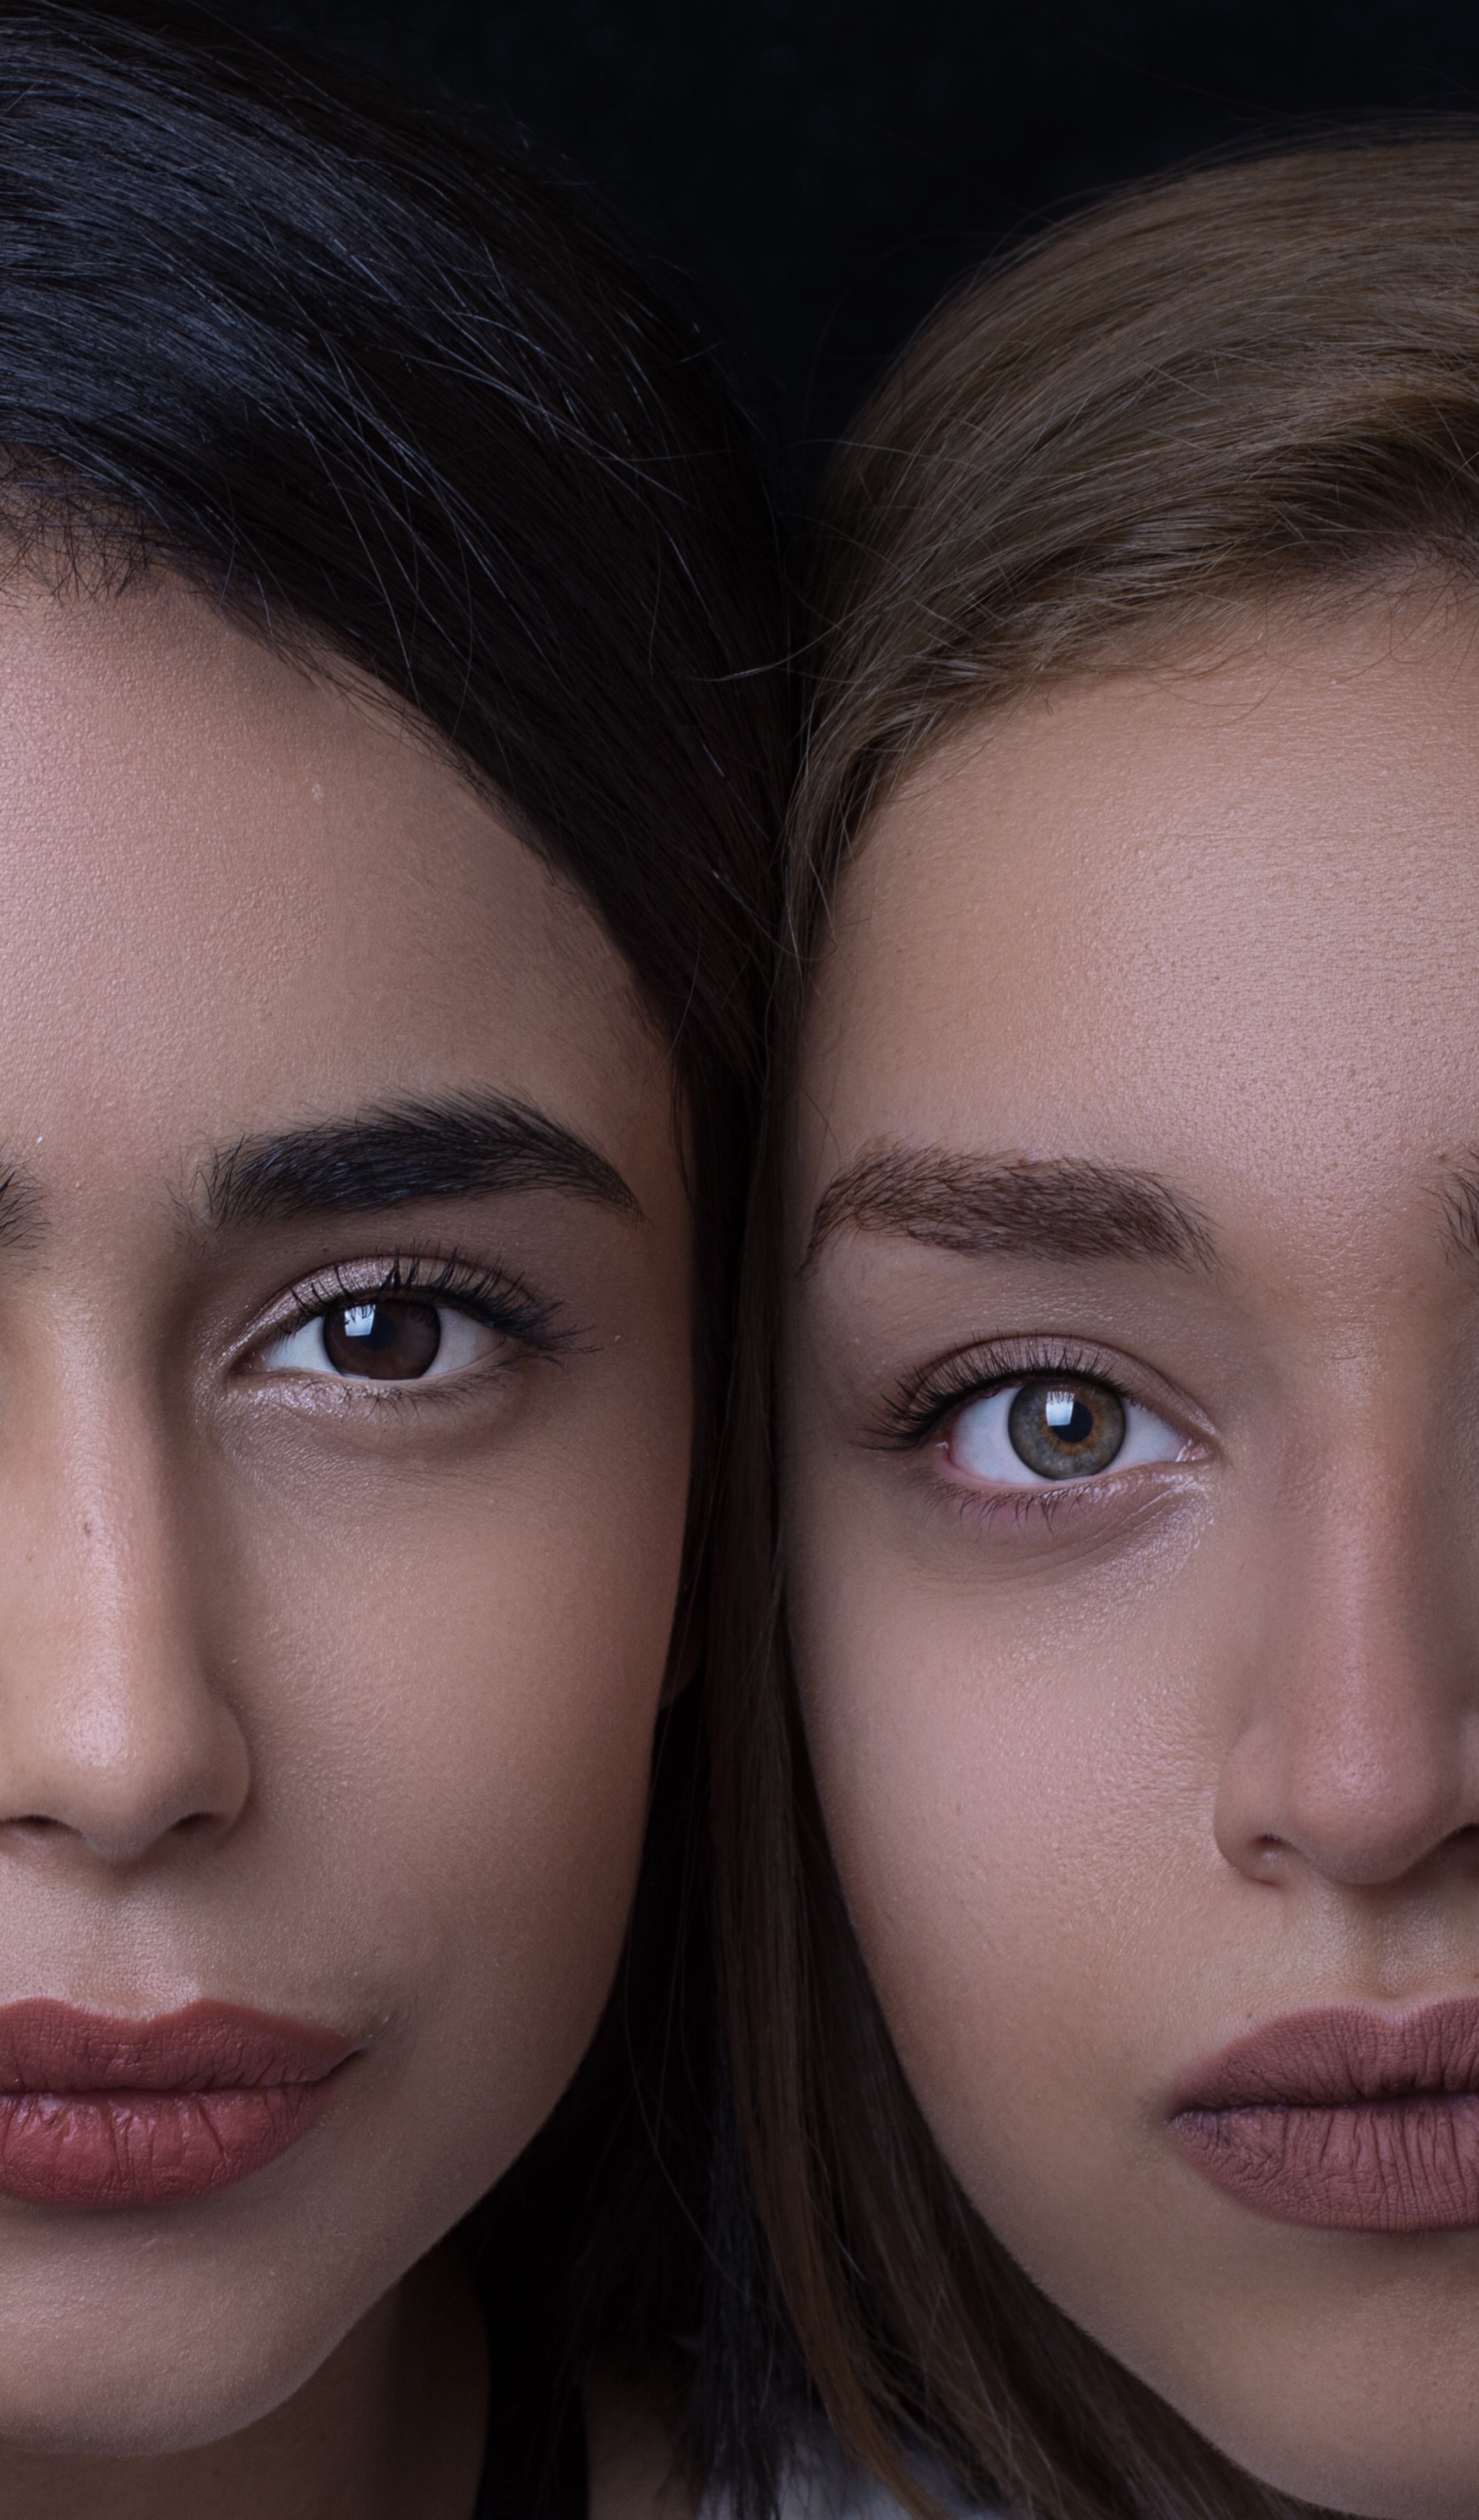 Eyebrow threading uses no chemicals or harsh products, just thread, proving better for the environment.